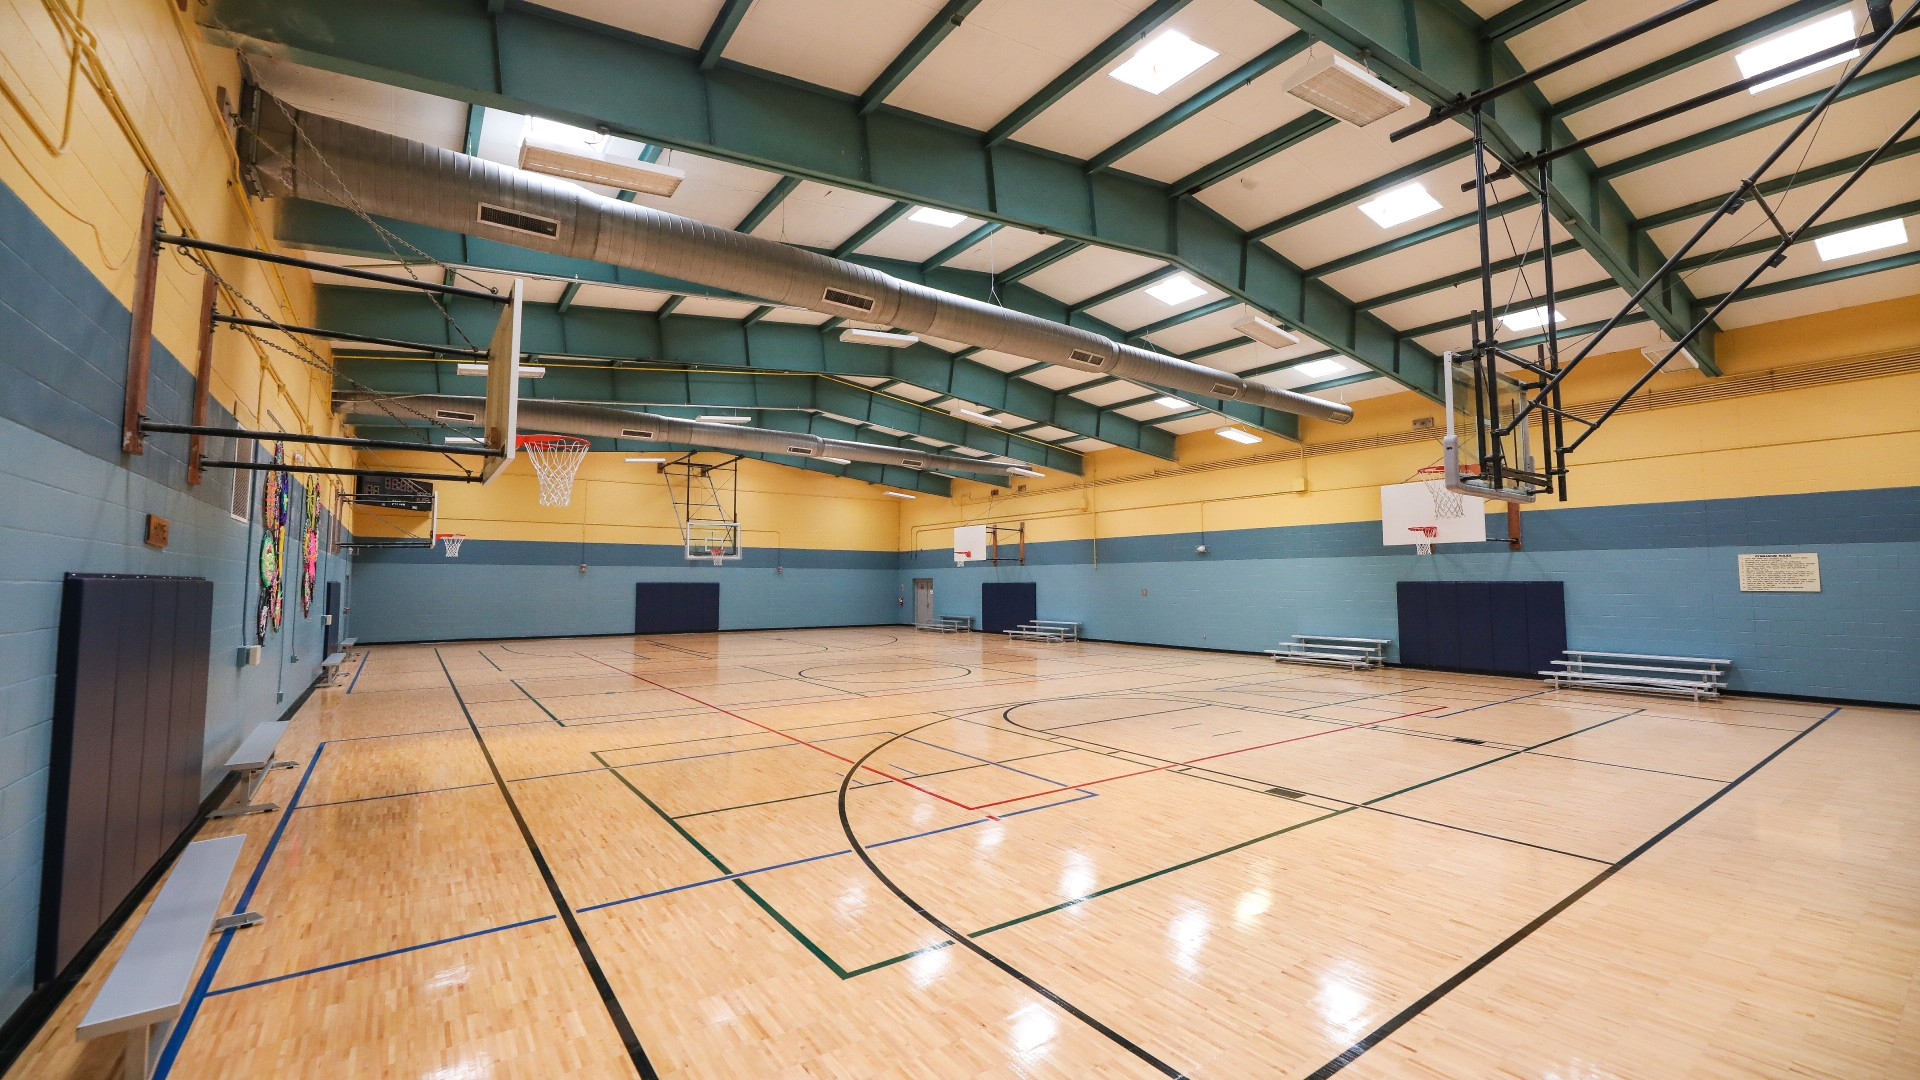 A large open gymnasium with multiple hoops and bleachers